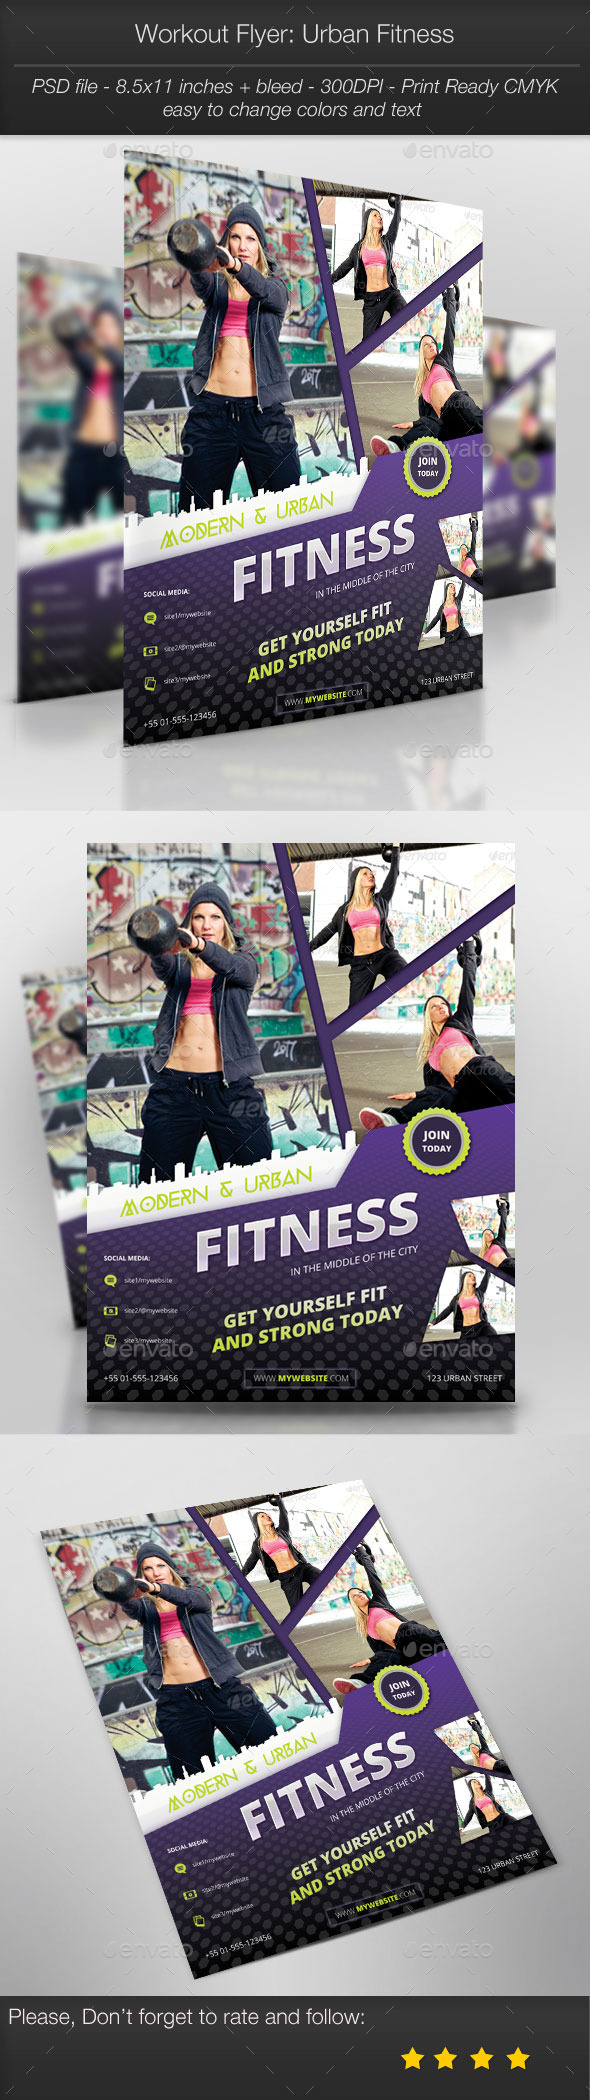 Workout Flyer: Urban Fitness